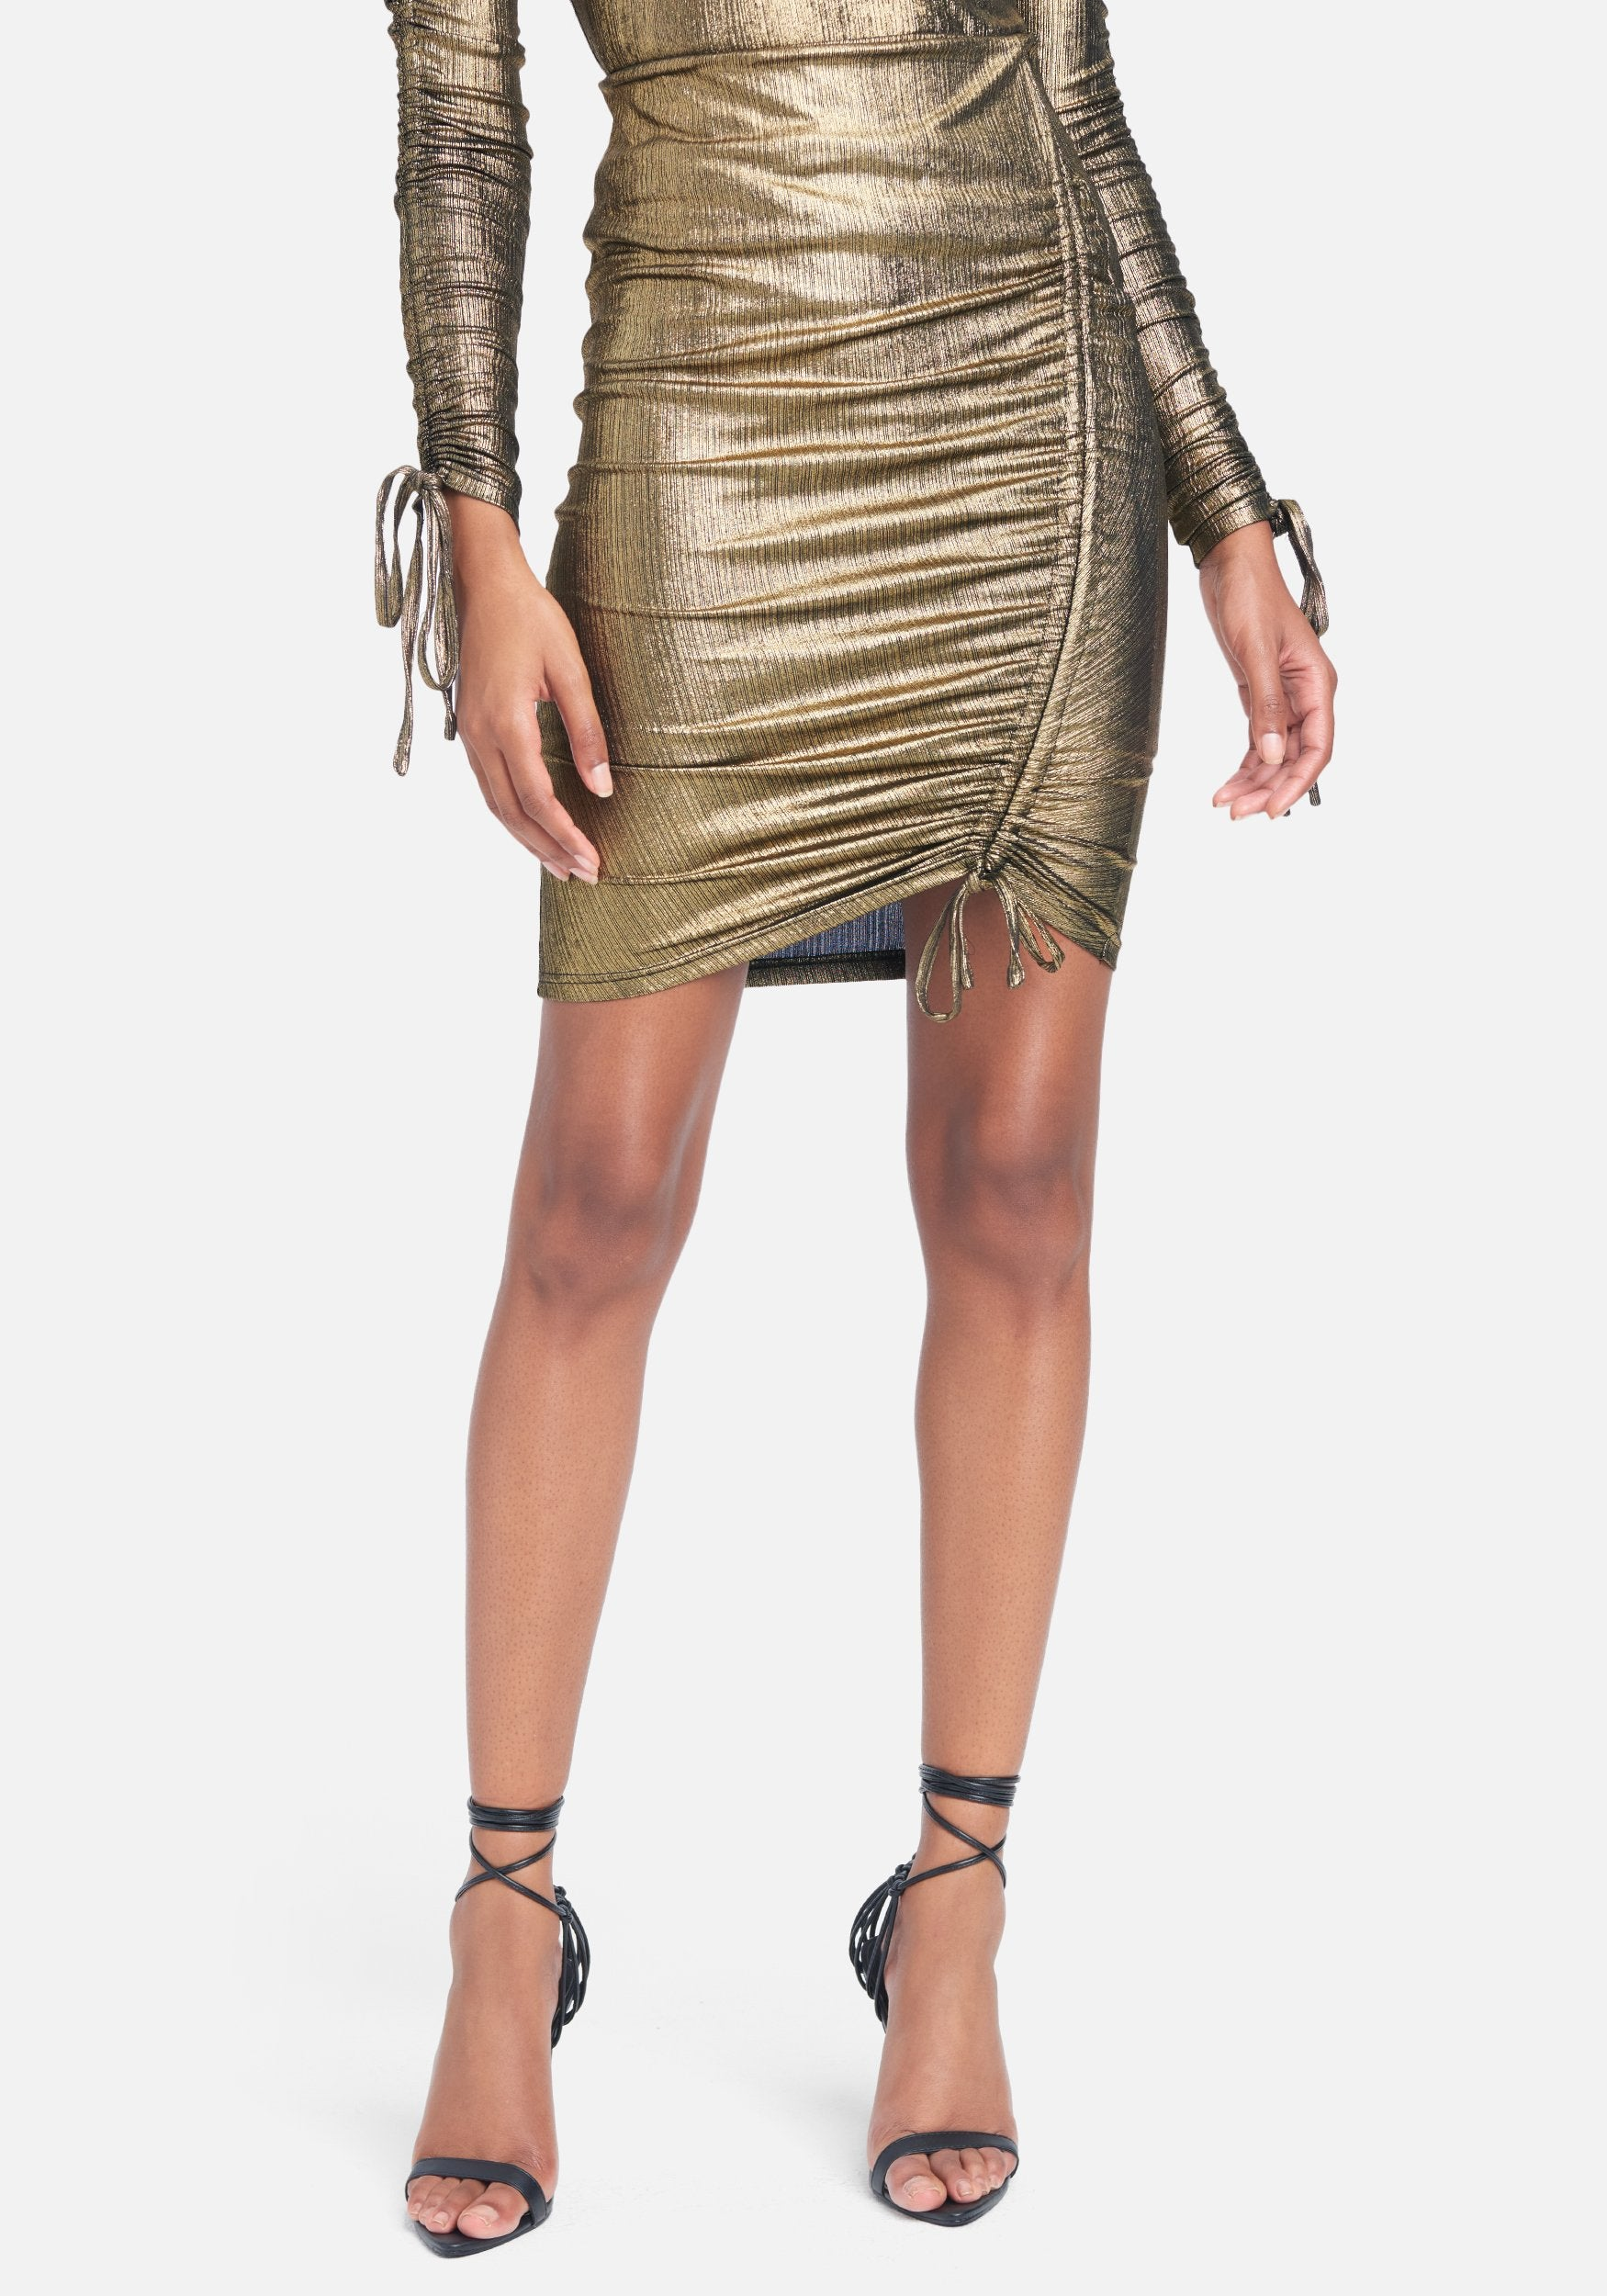 Bebe Women's Foil Knit Tunnel Detail Skirt, Size XS in Metallic Gold Metal/Spandex